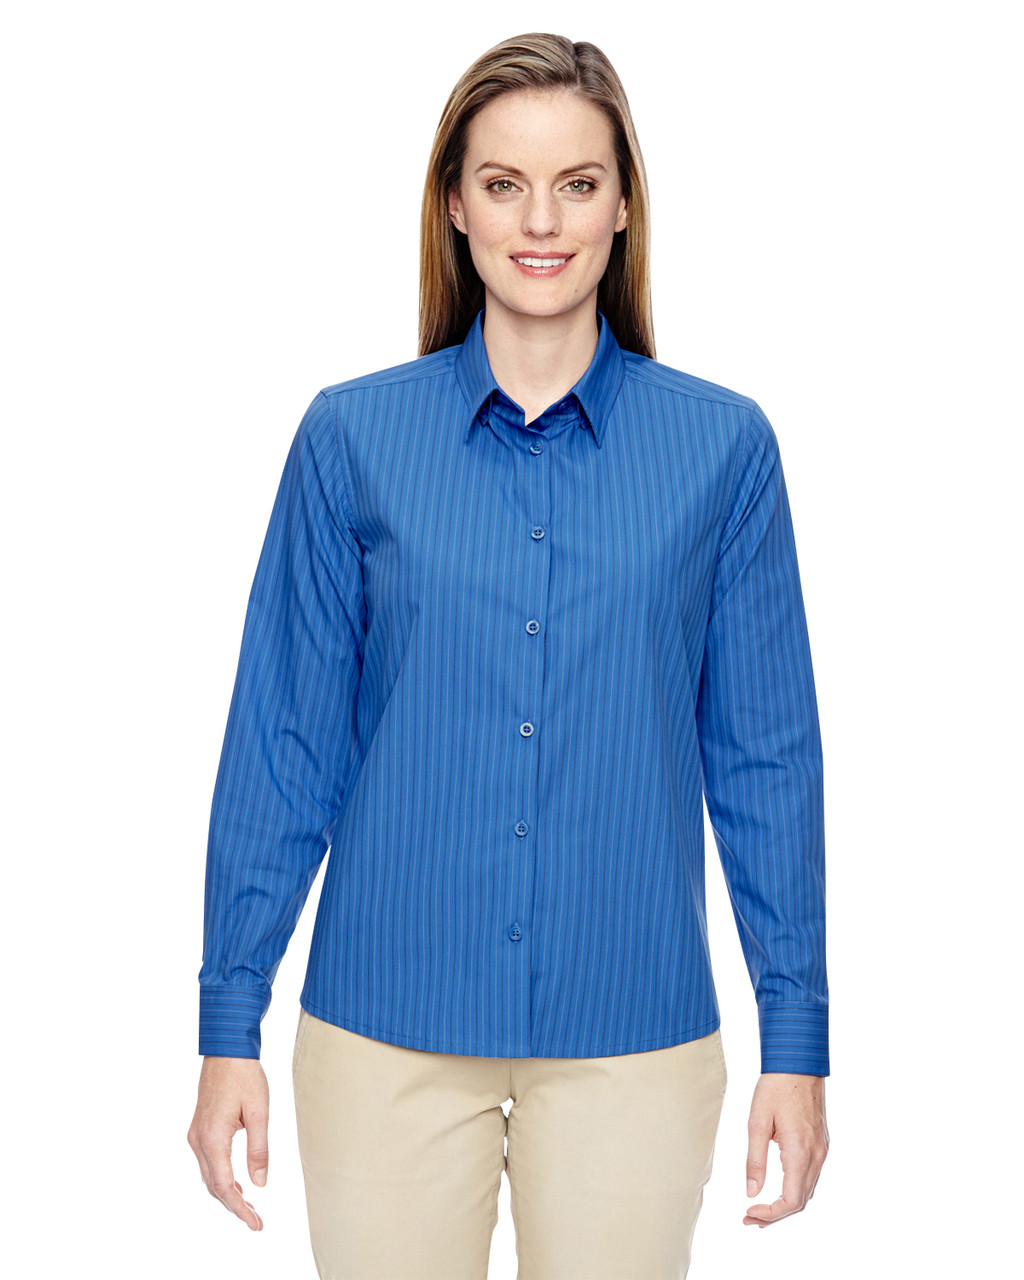 Deep Blue - 77044 North End Align Wrinkle-Resistant Cotton Blend Dobby Vertical Striped Shirt | Blankclothing.ca